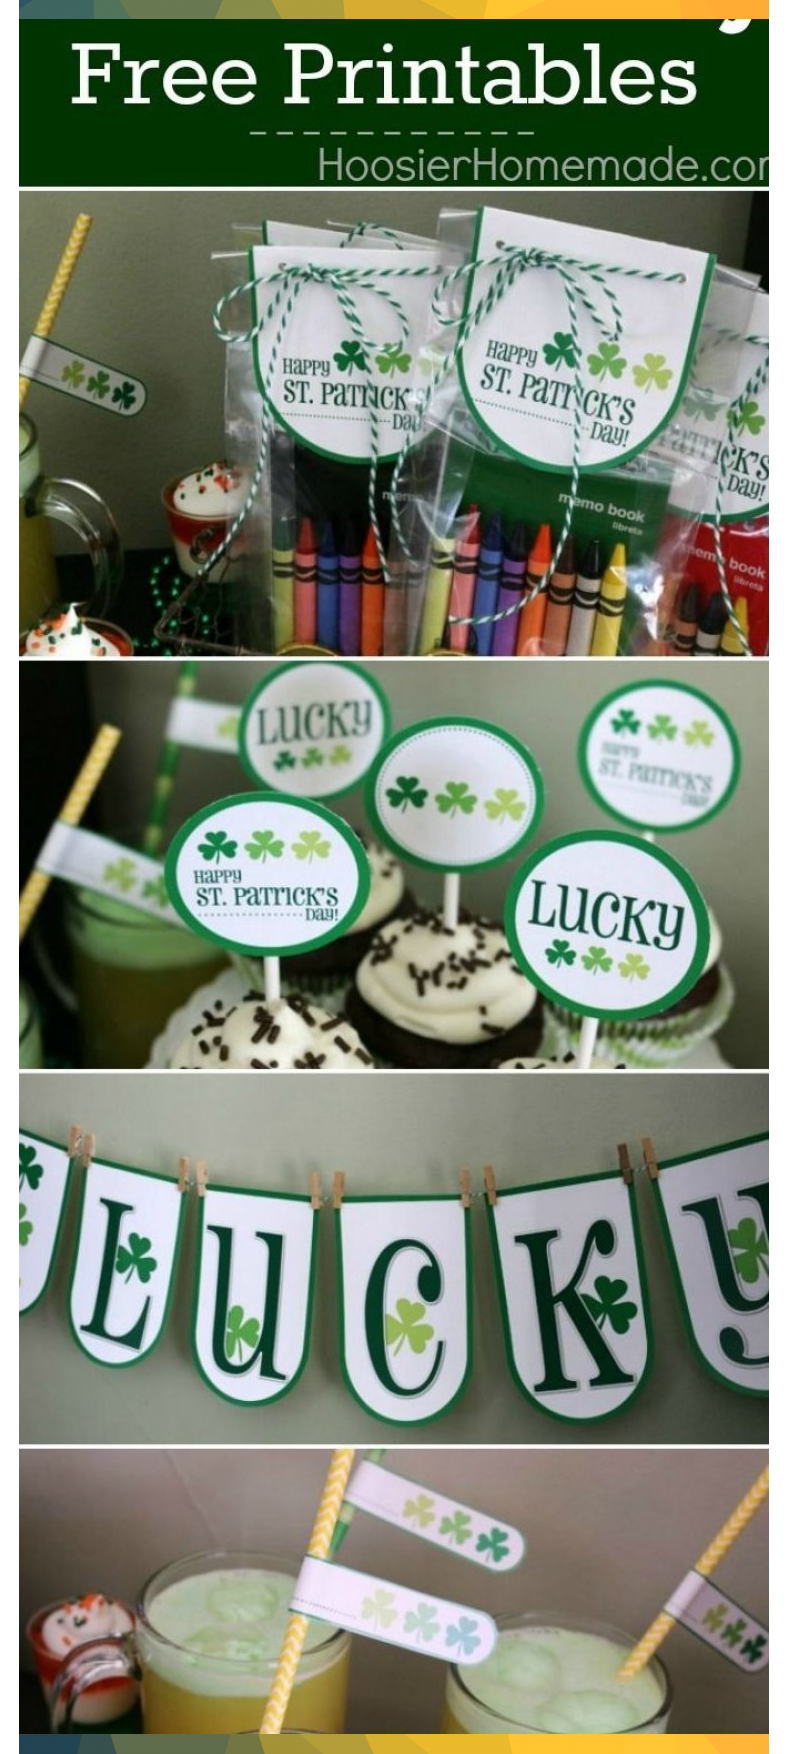 St. Patrick's Day Printables - These FREE Printables Include a Lucky Banne ...#B..., #Banne #Day #Free #include #lucky #Patricks #printables #StPatricksDayactivities #StPatricksDayclover #StPatricksDaycrafts #StPatricksDaydecorations #StPatricksDayfood #StPatricksDayoutfit #StPatricksDayparty #StPatricksDayprintables #StPatricksDayquotes #StPatricksDaywallpaper